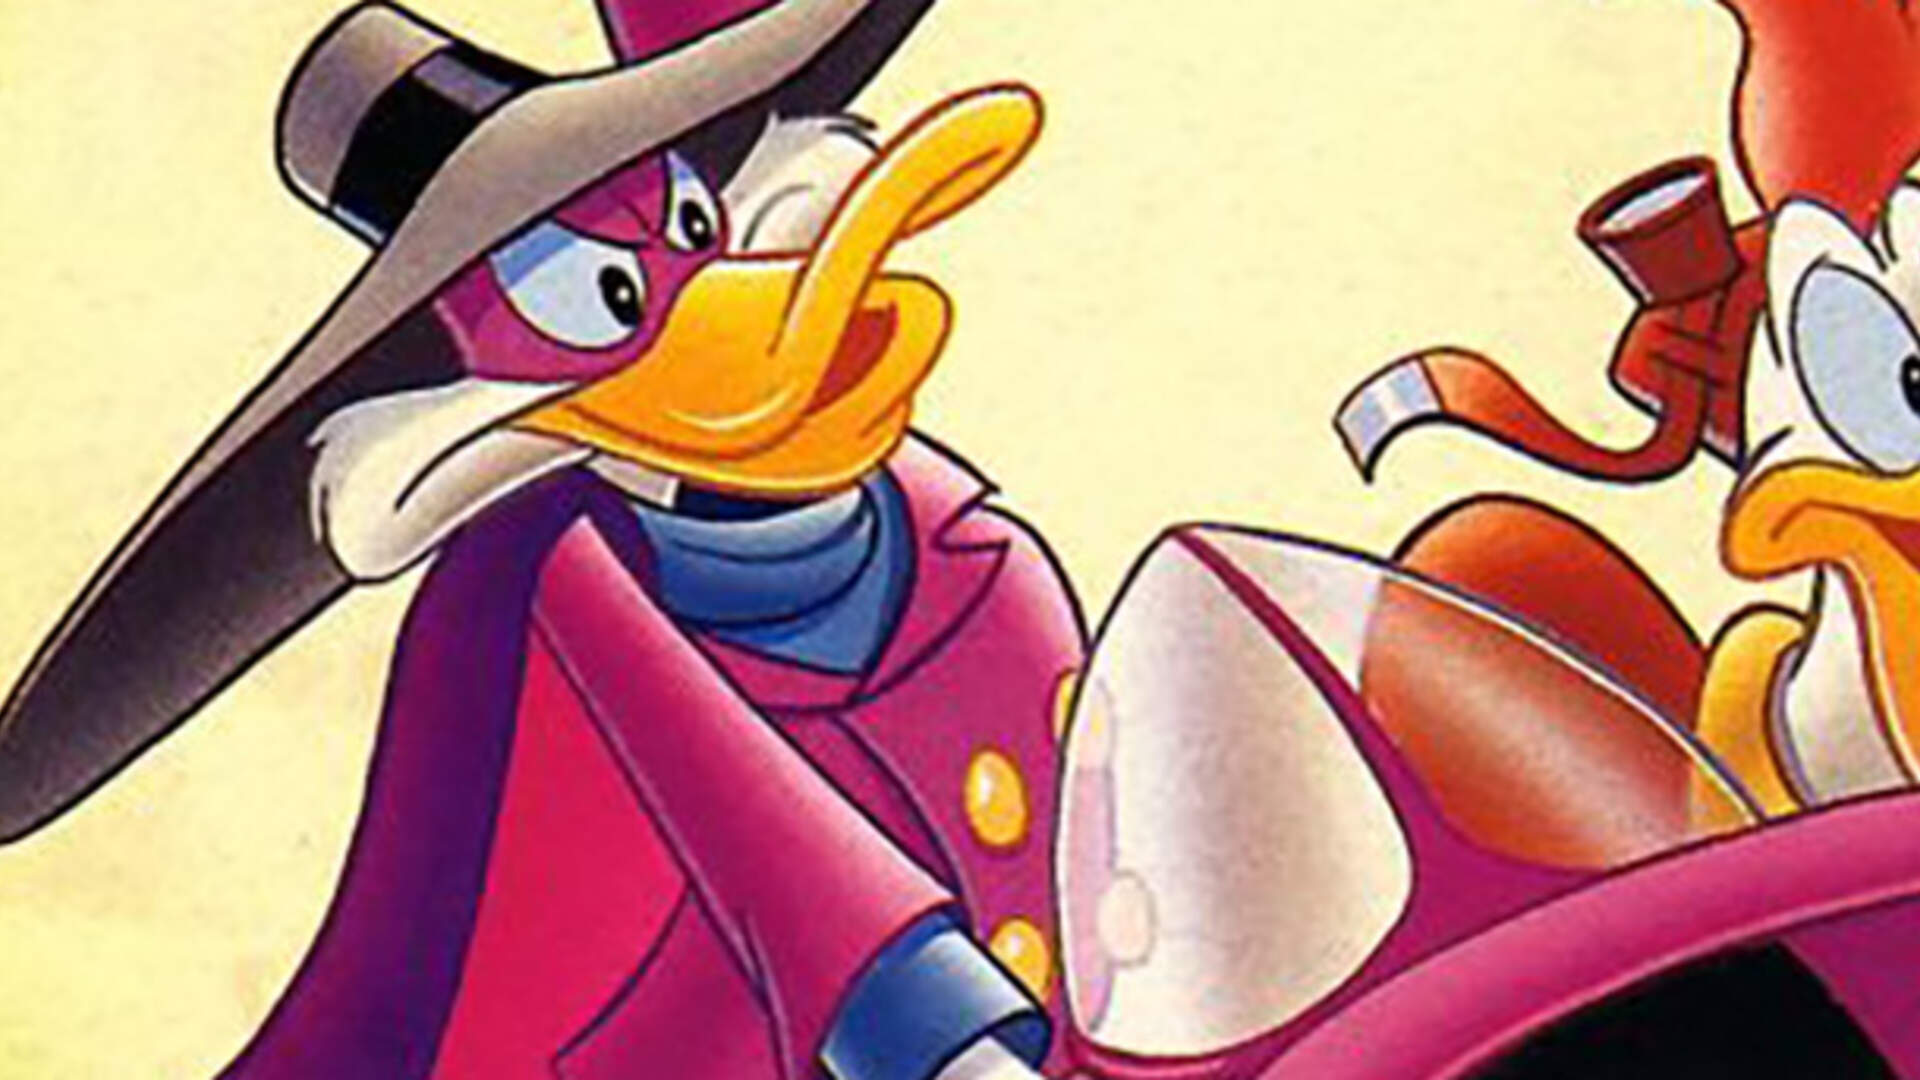 Sonic Mania Developers Release Playable Darkwing Duck Prototype Along With Gameplay Footage